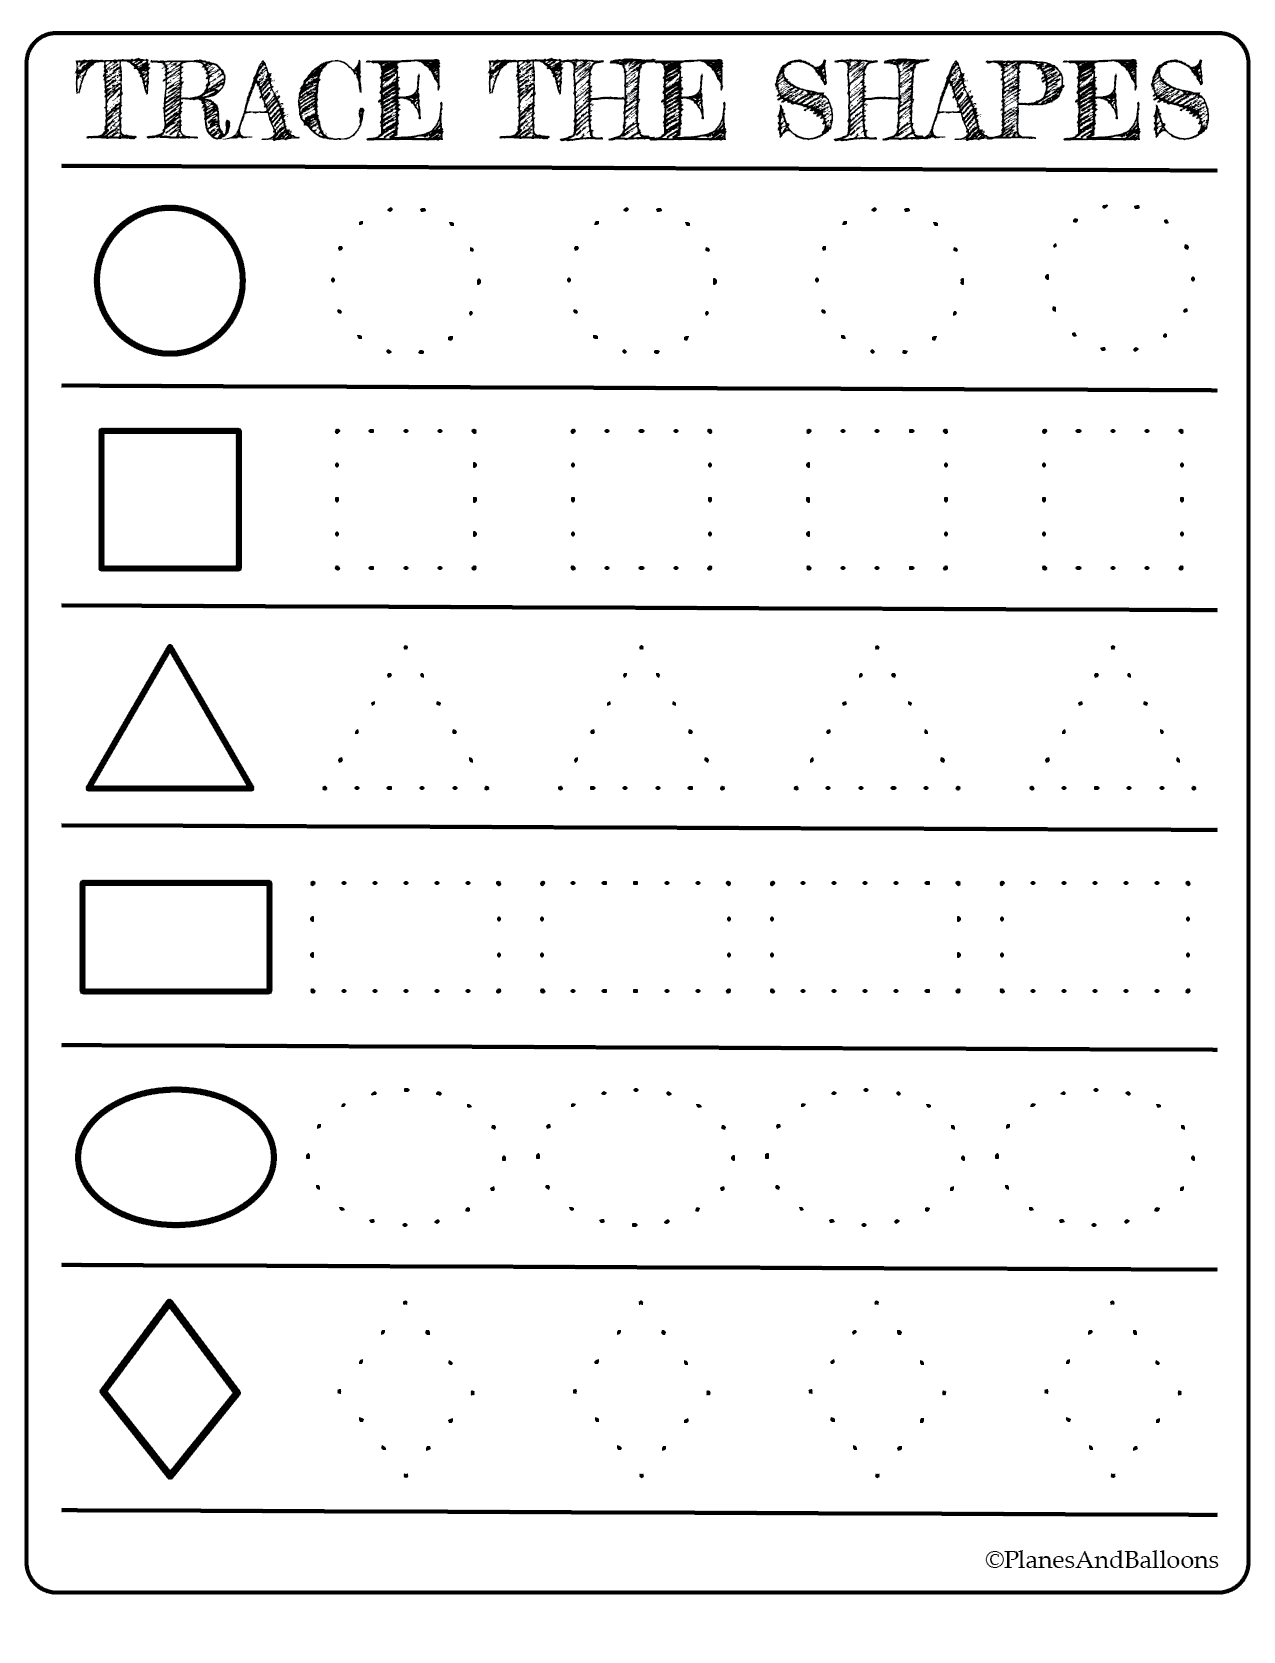 - Free Printable Shapes Worksheets For Toddlers And Preschoolers On